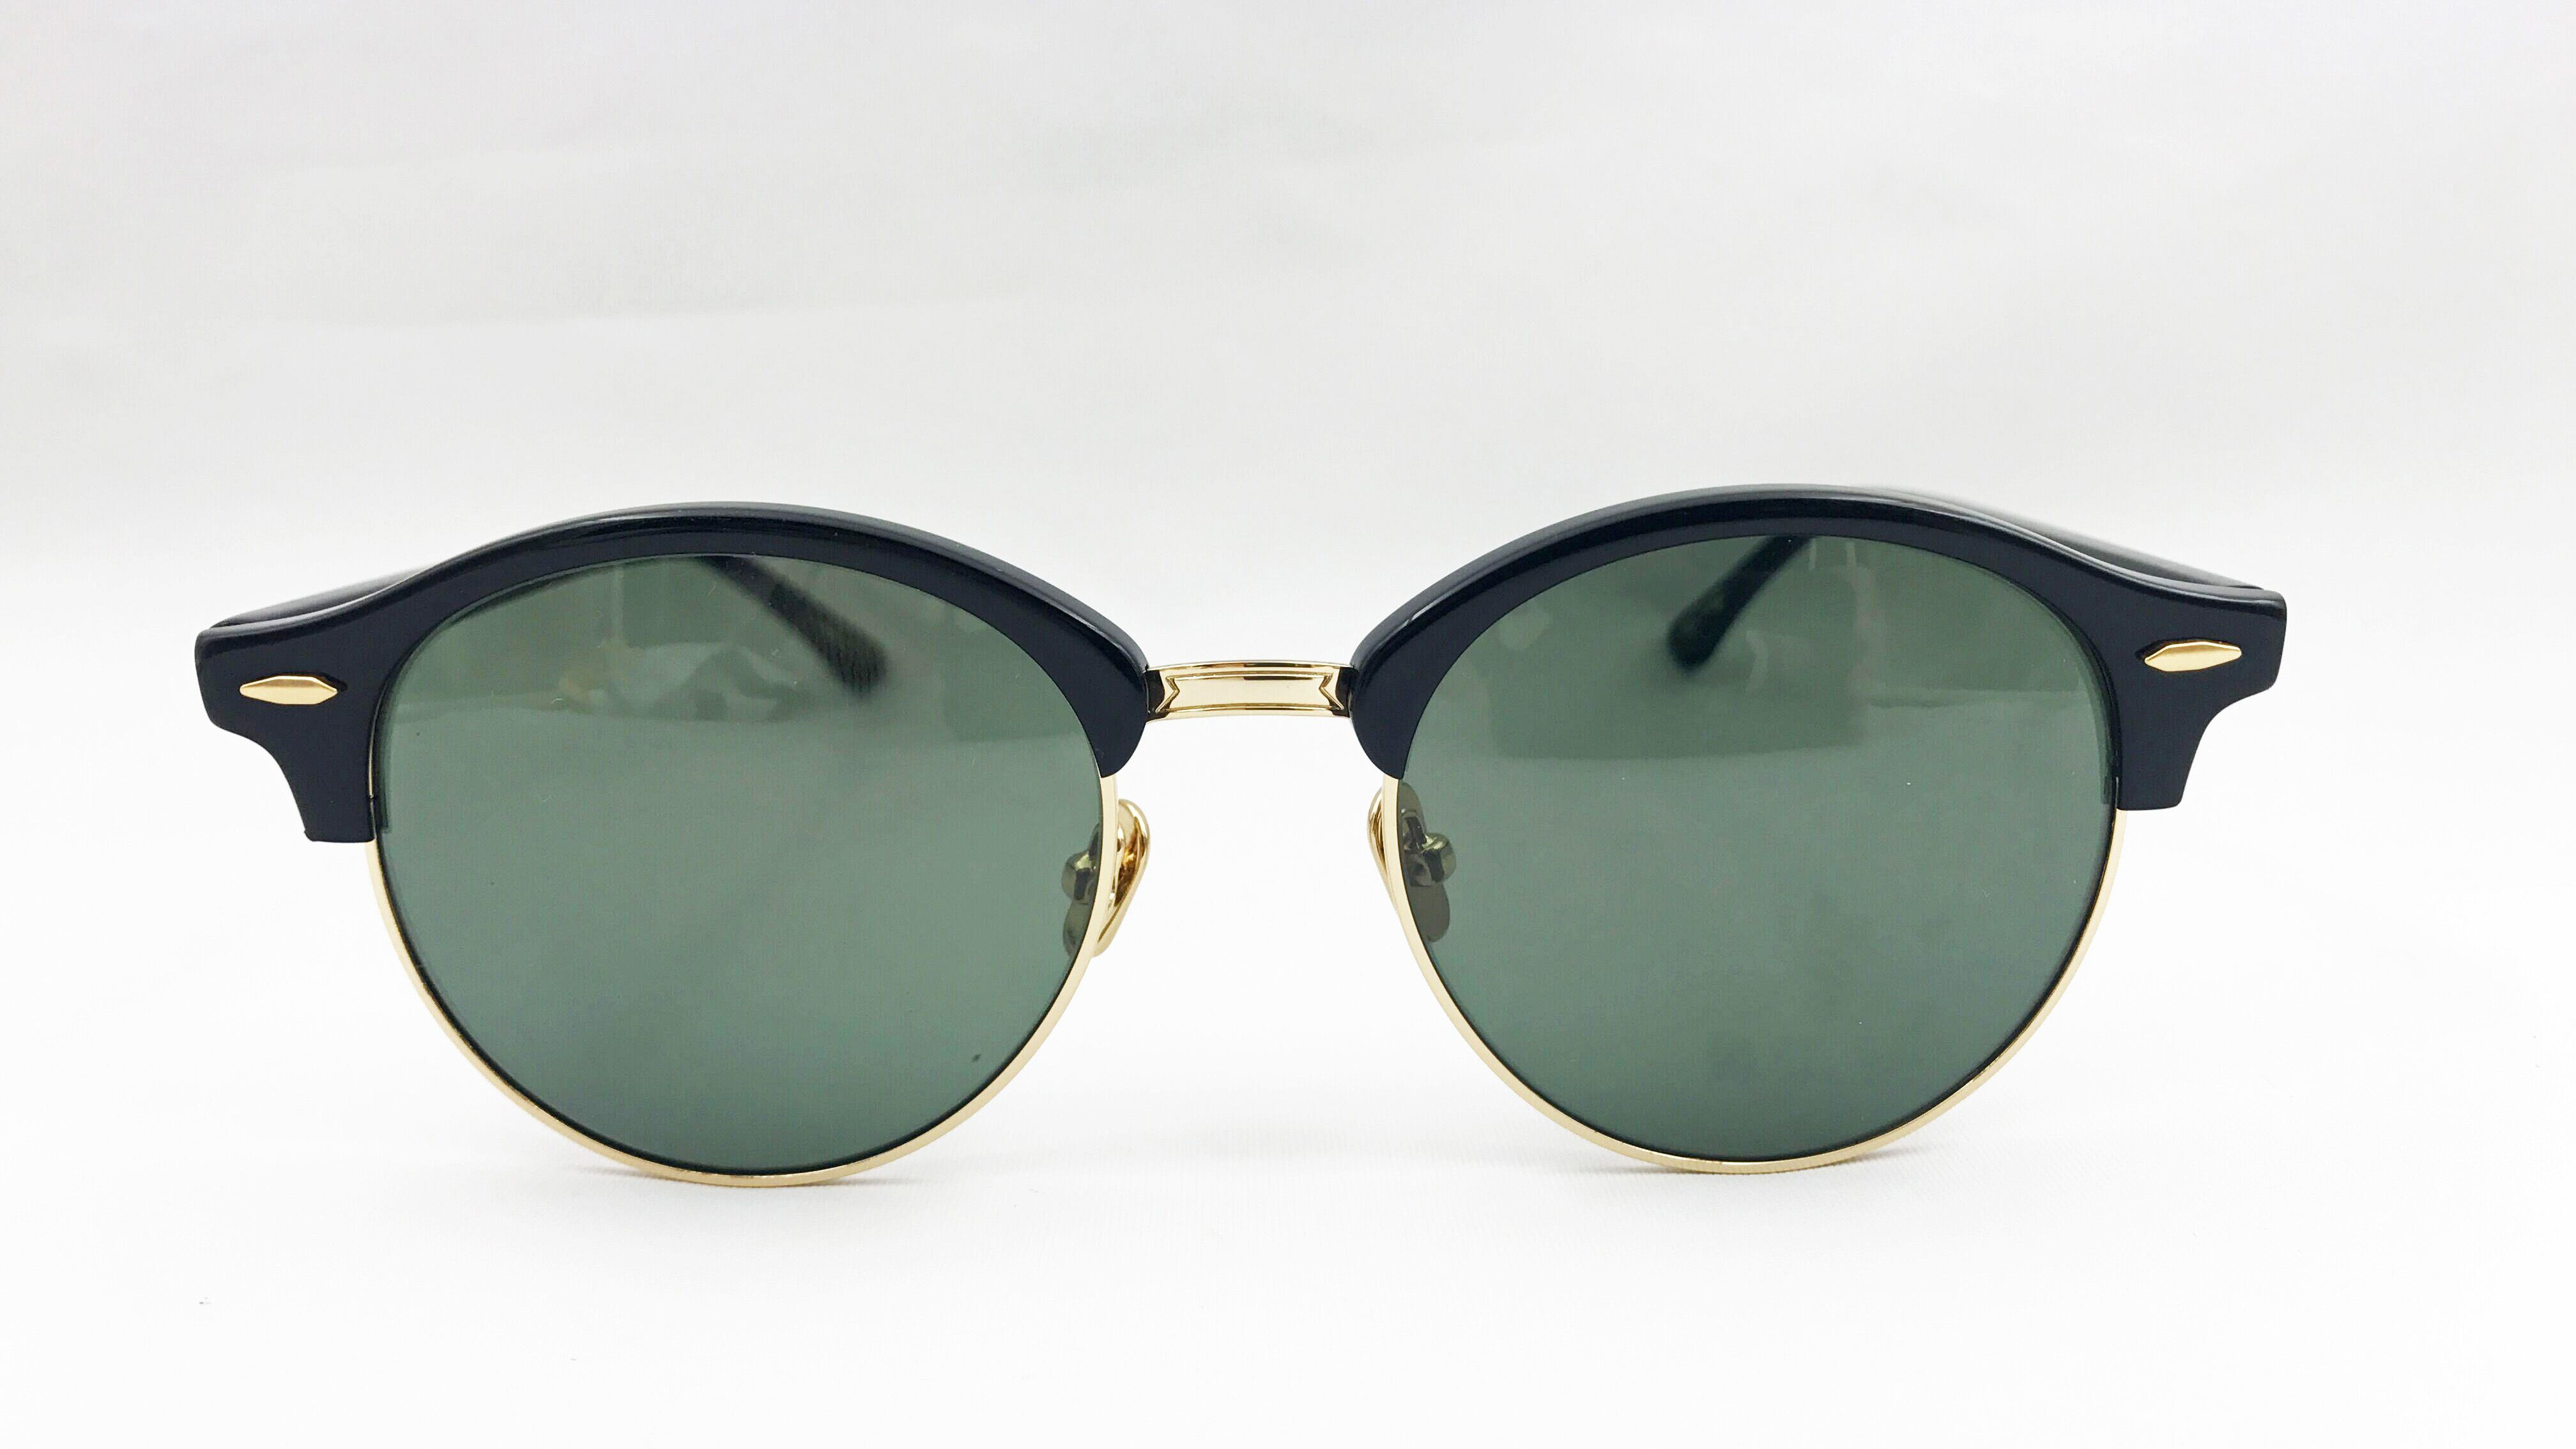 Acetate Sunglasses with Glass Lens for Male and Female.